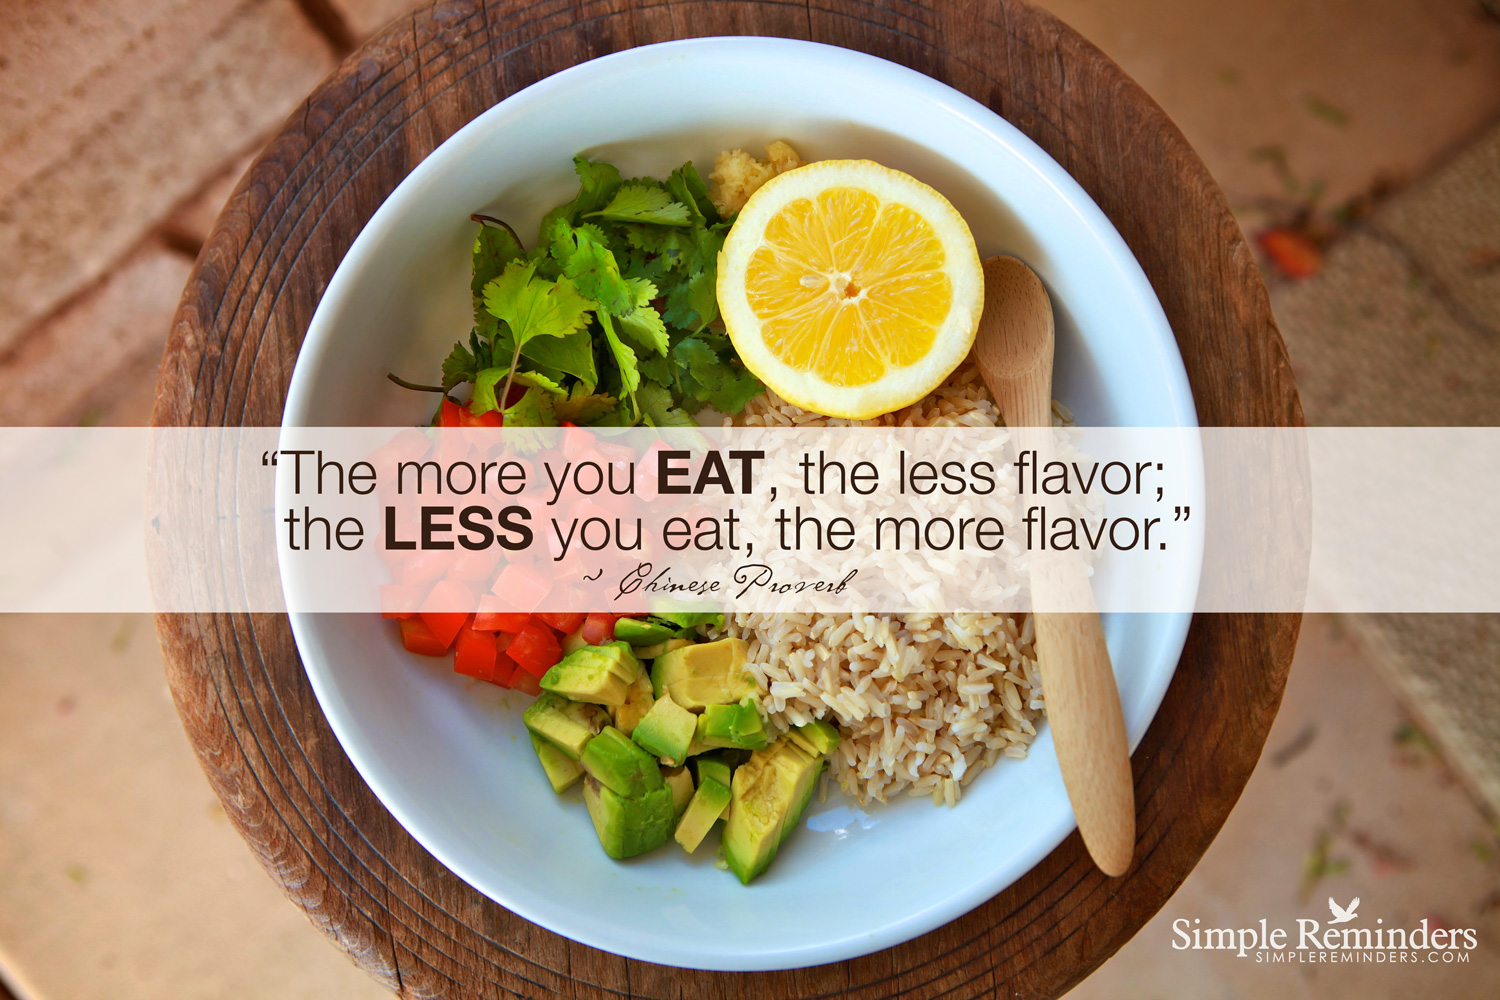 simplereminders.com-eat-less-chineseproverb-withtext-displayres